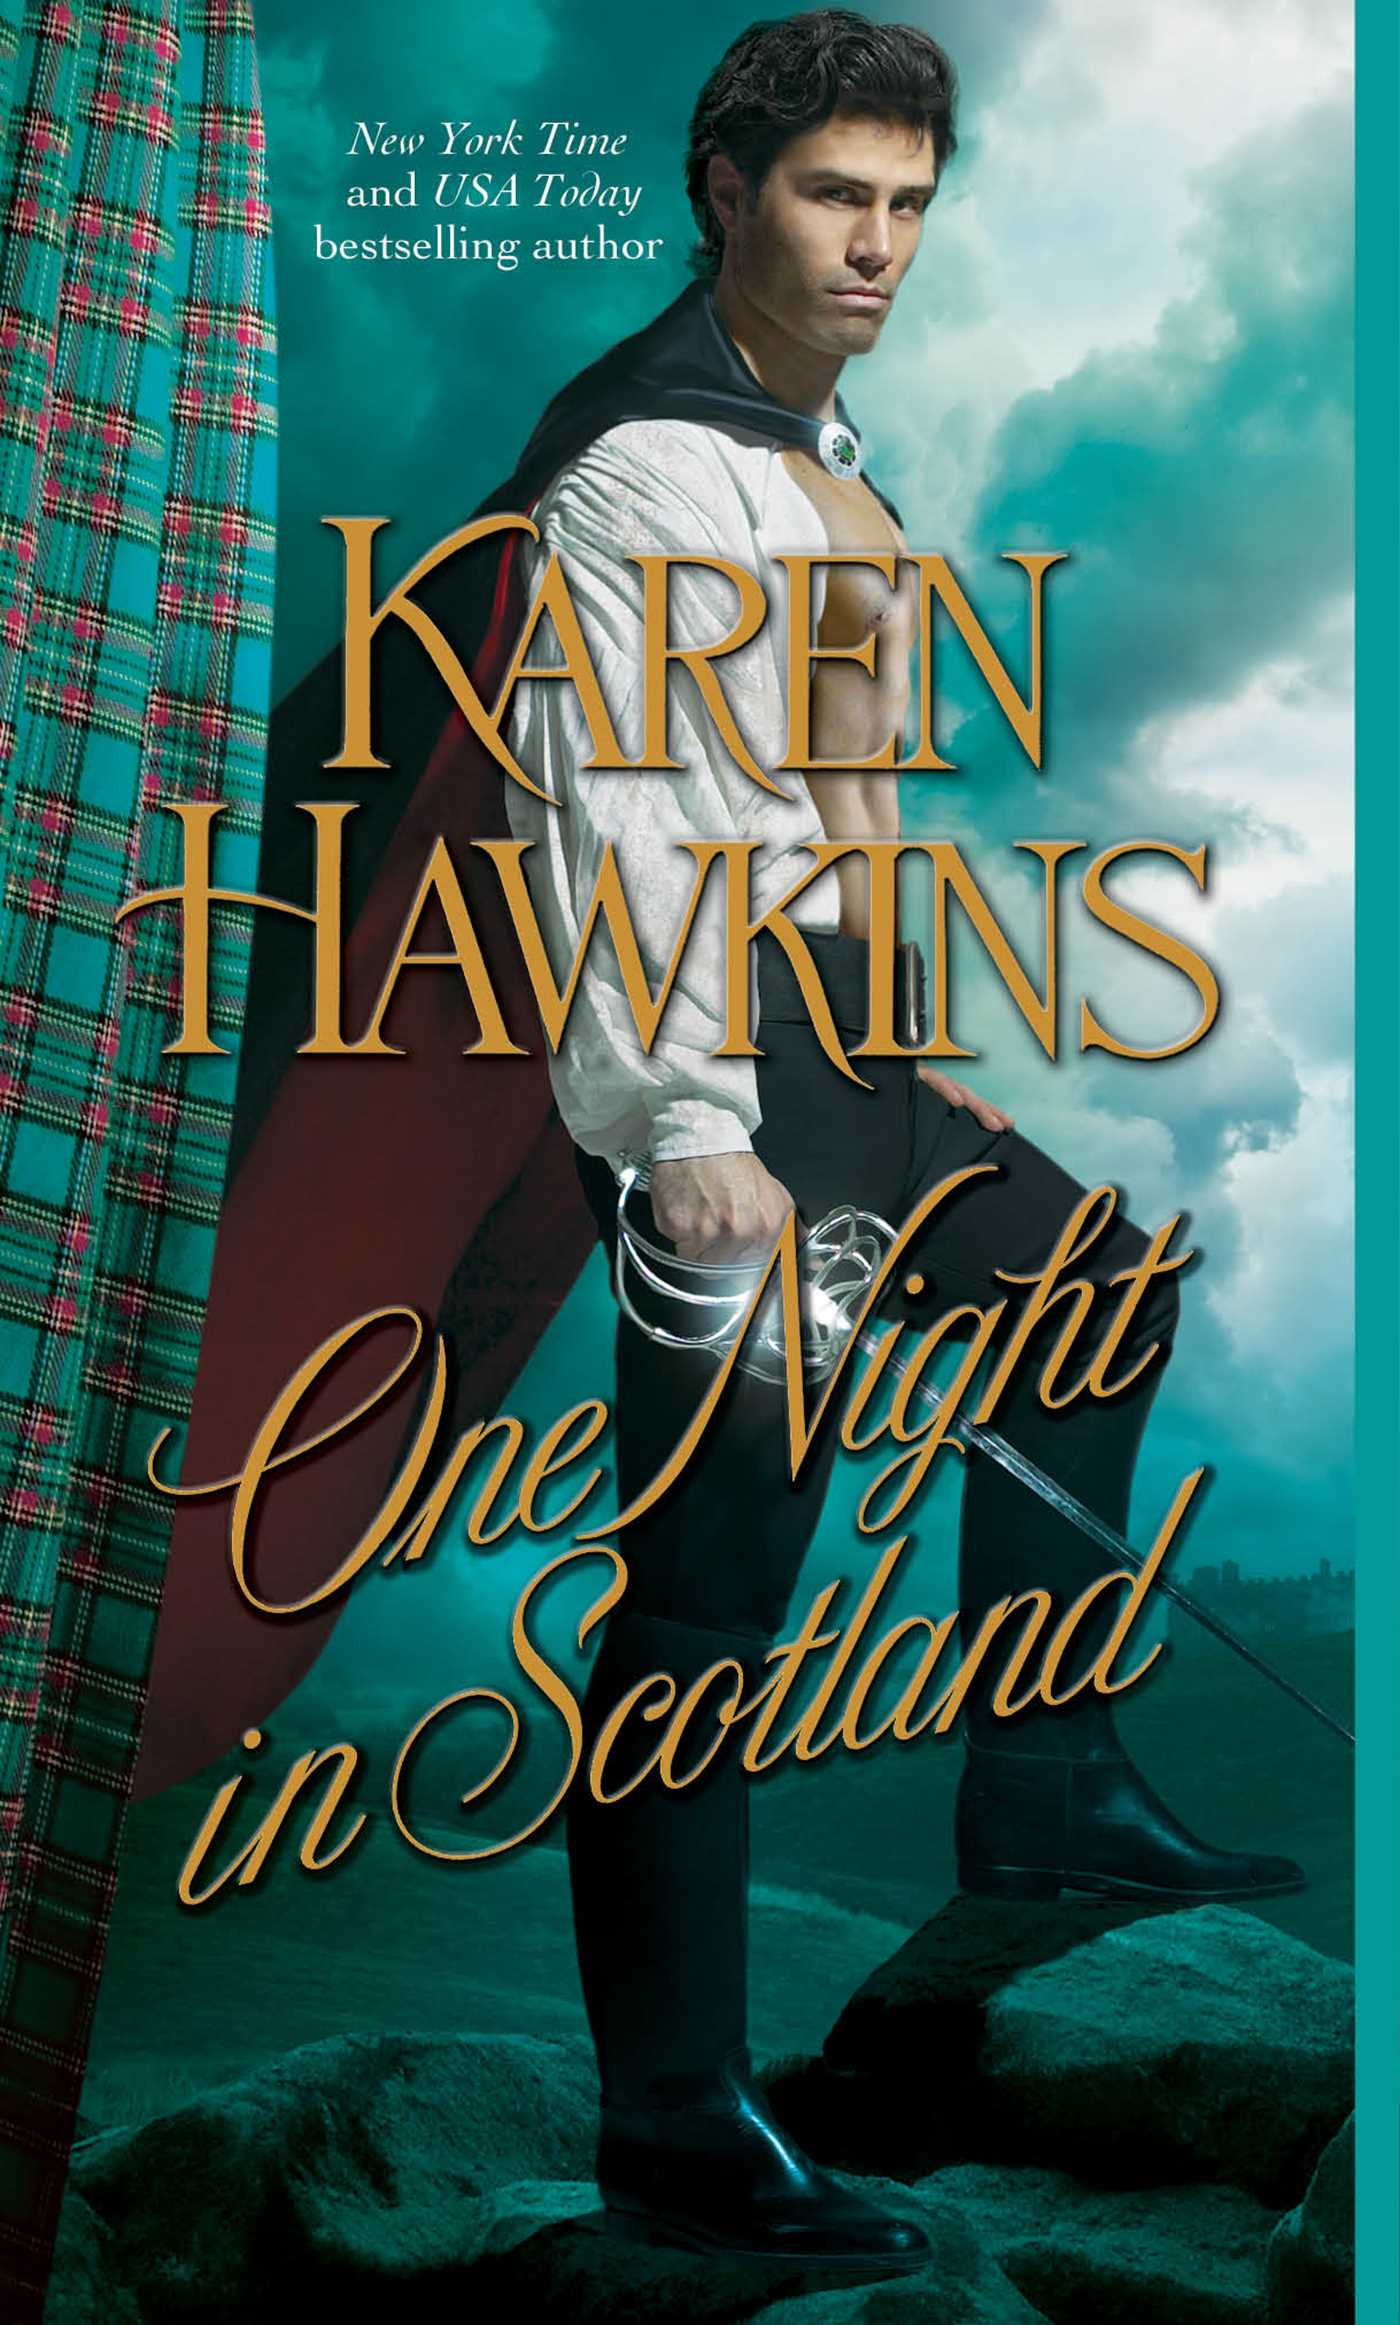 One night in scotland 9781439176009 hr